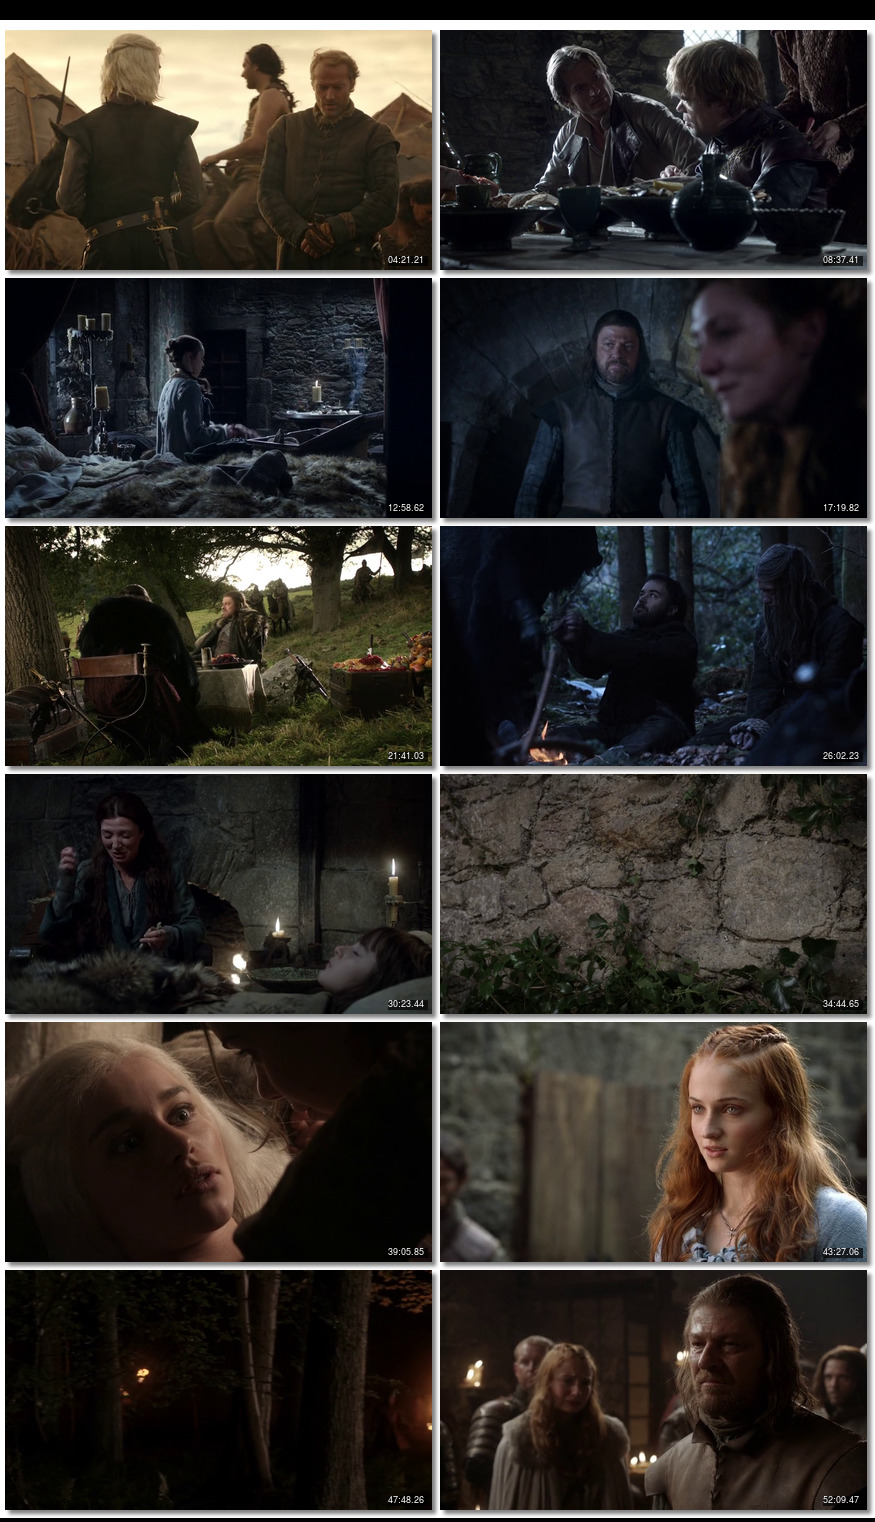 Game Of Thrones S04e01 720p 225 - intetibneou.wixsite.com